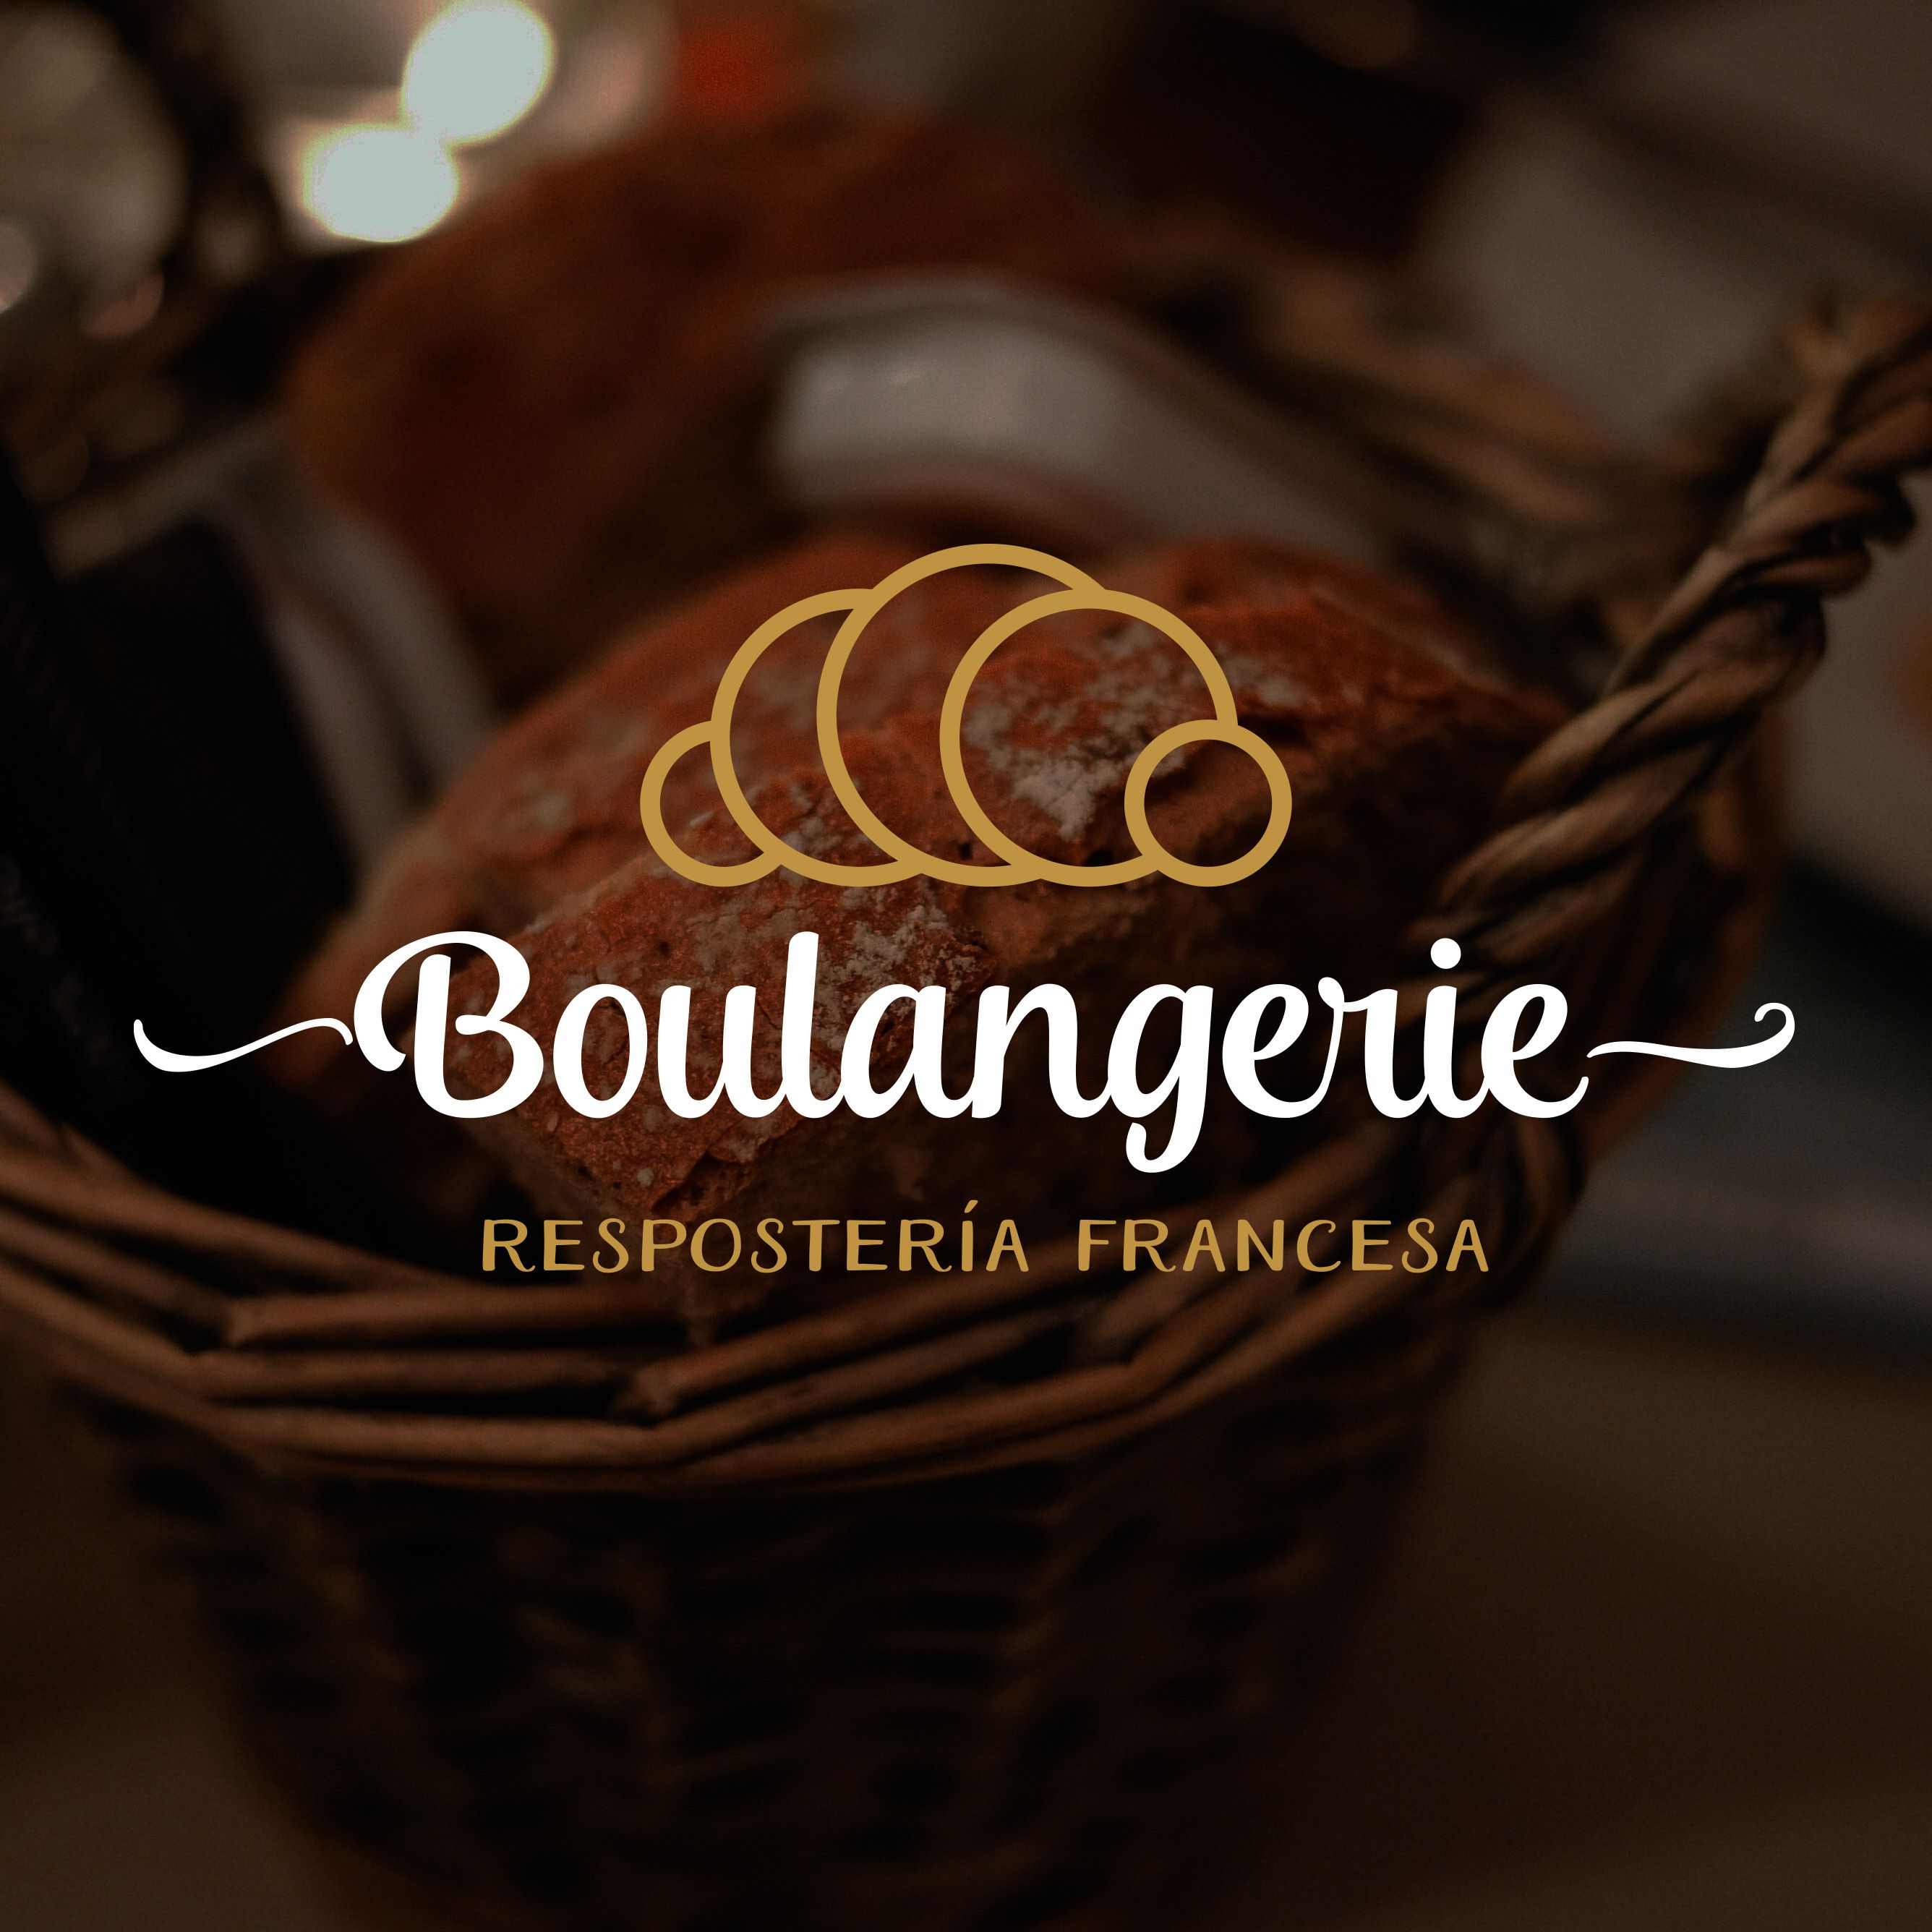 substitute an apron for the rolling pin and add a little bit of branding logo design for a french bakery diseno de logotipo para pasteleria francesa